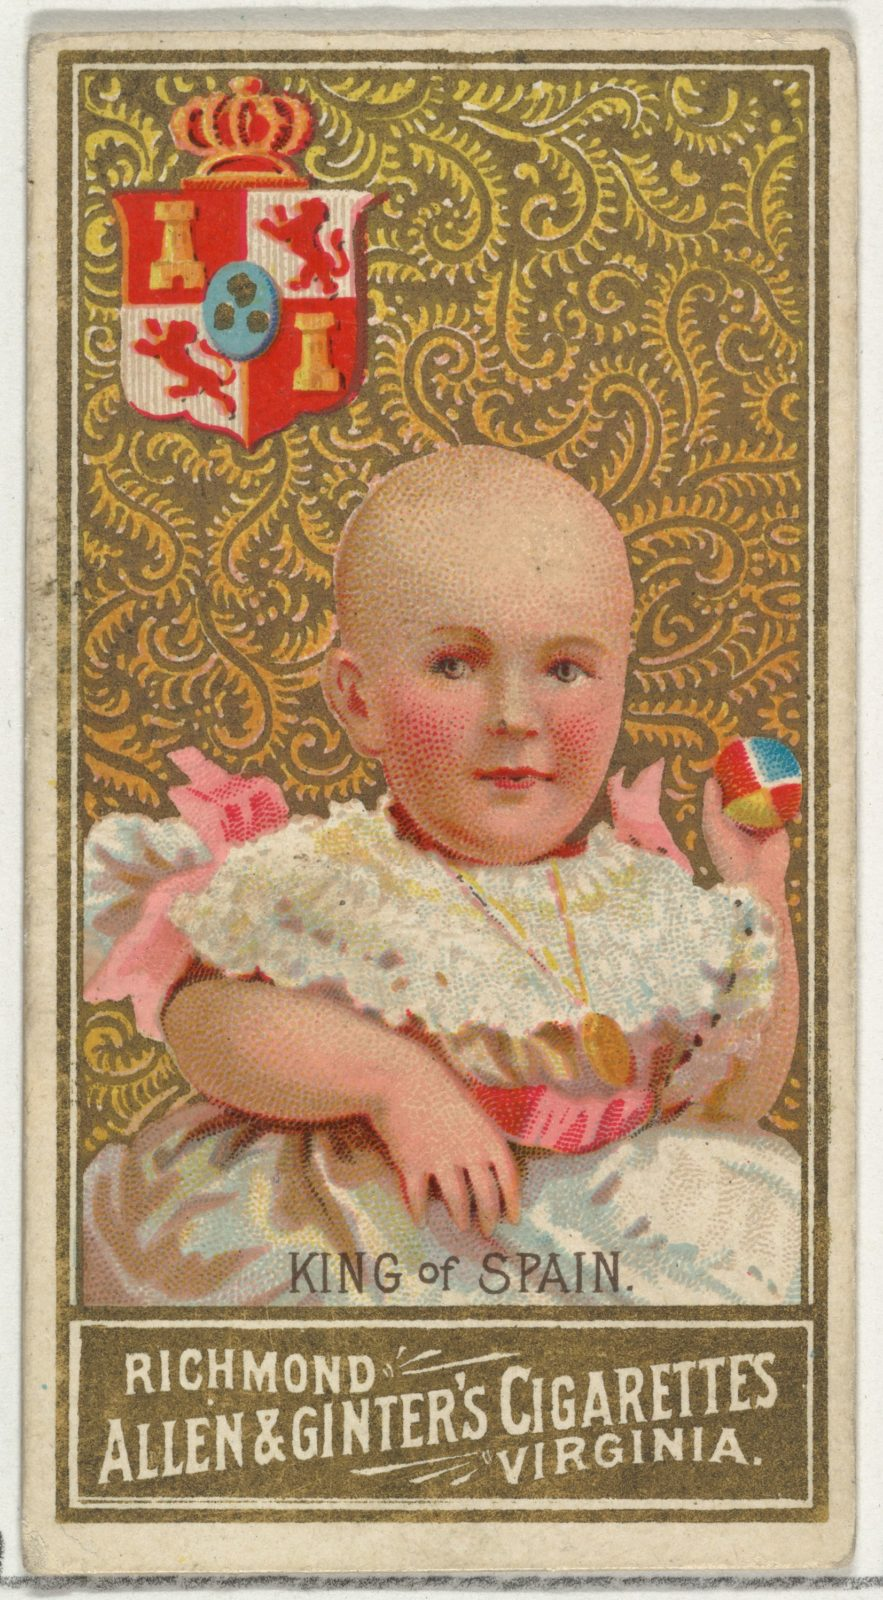 King of Spain, from World's Sovereigns series (N34) for Allen & Ginter Cigarettes